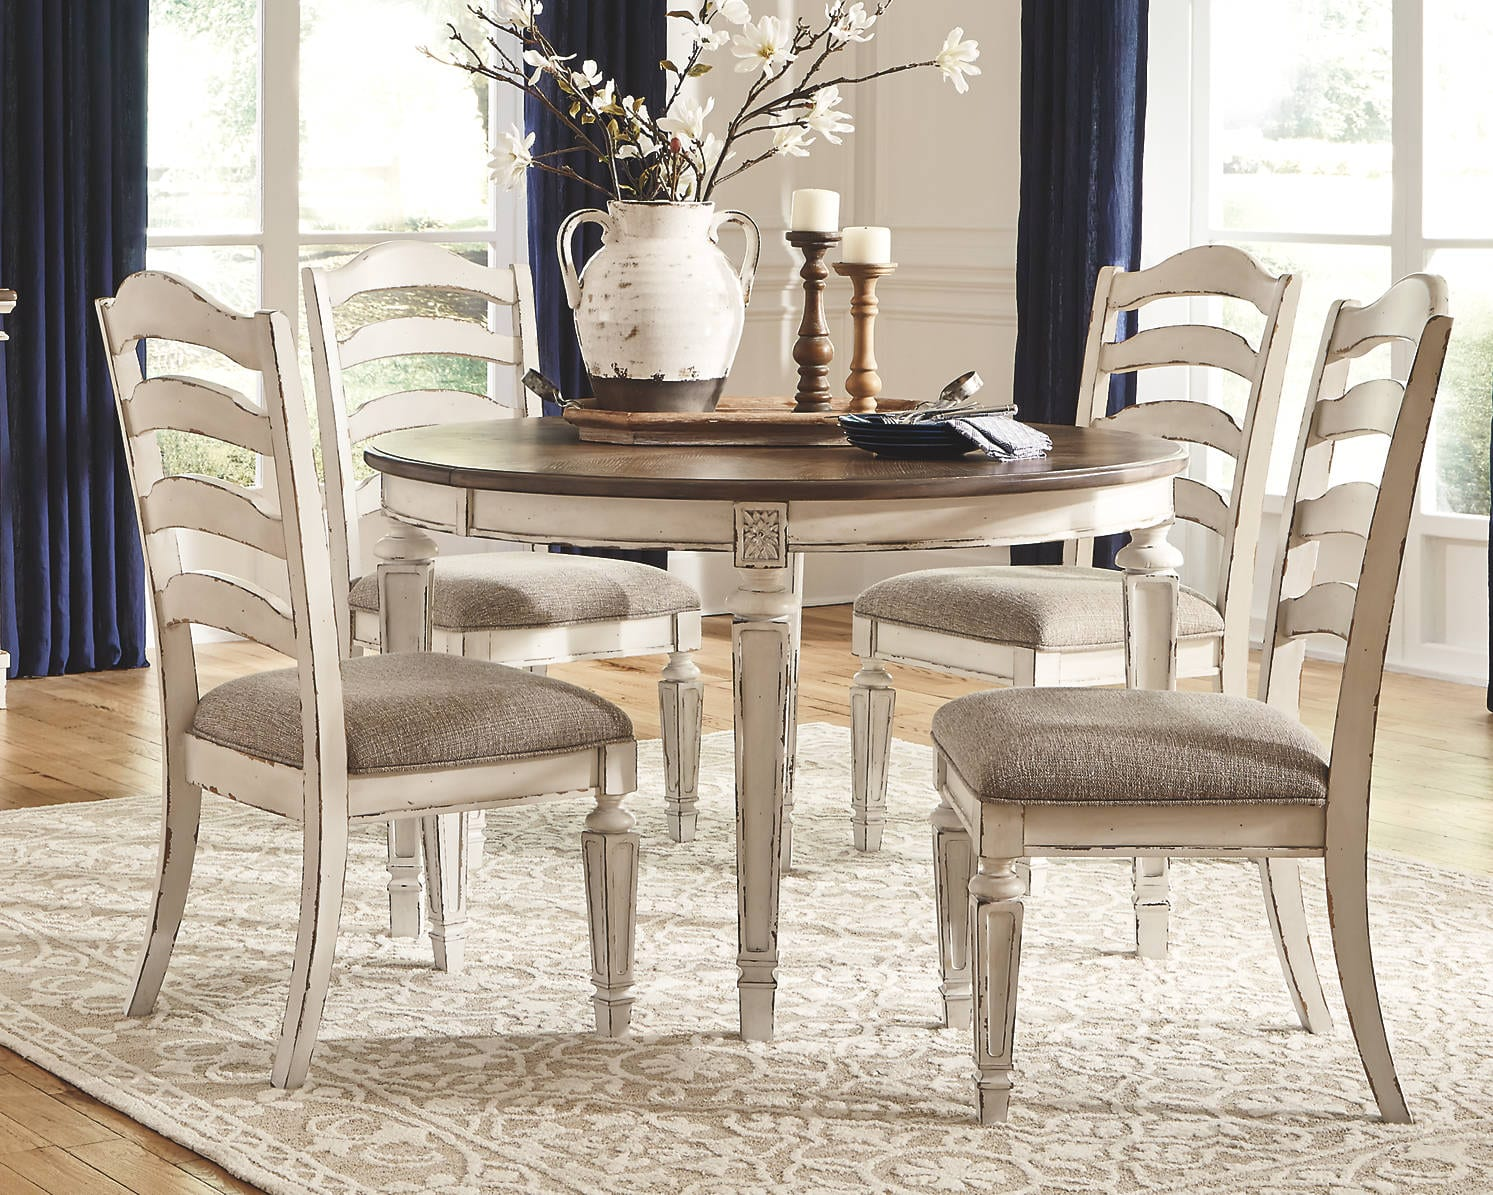 Oval Shaped Dining Table Realyn Series by Ashley Furniture